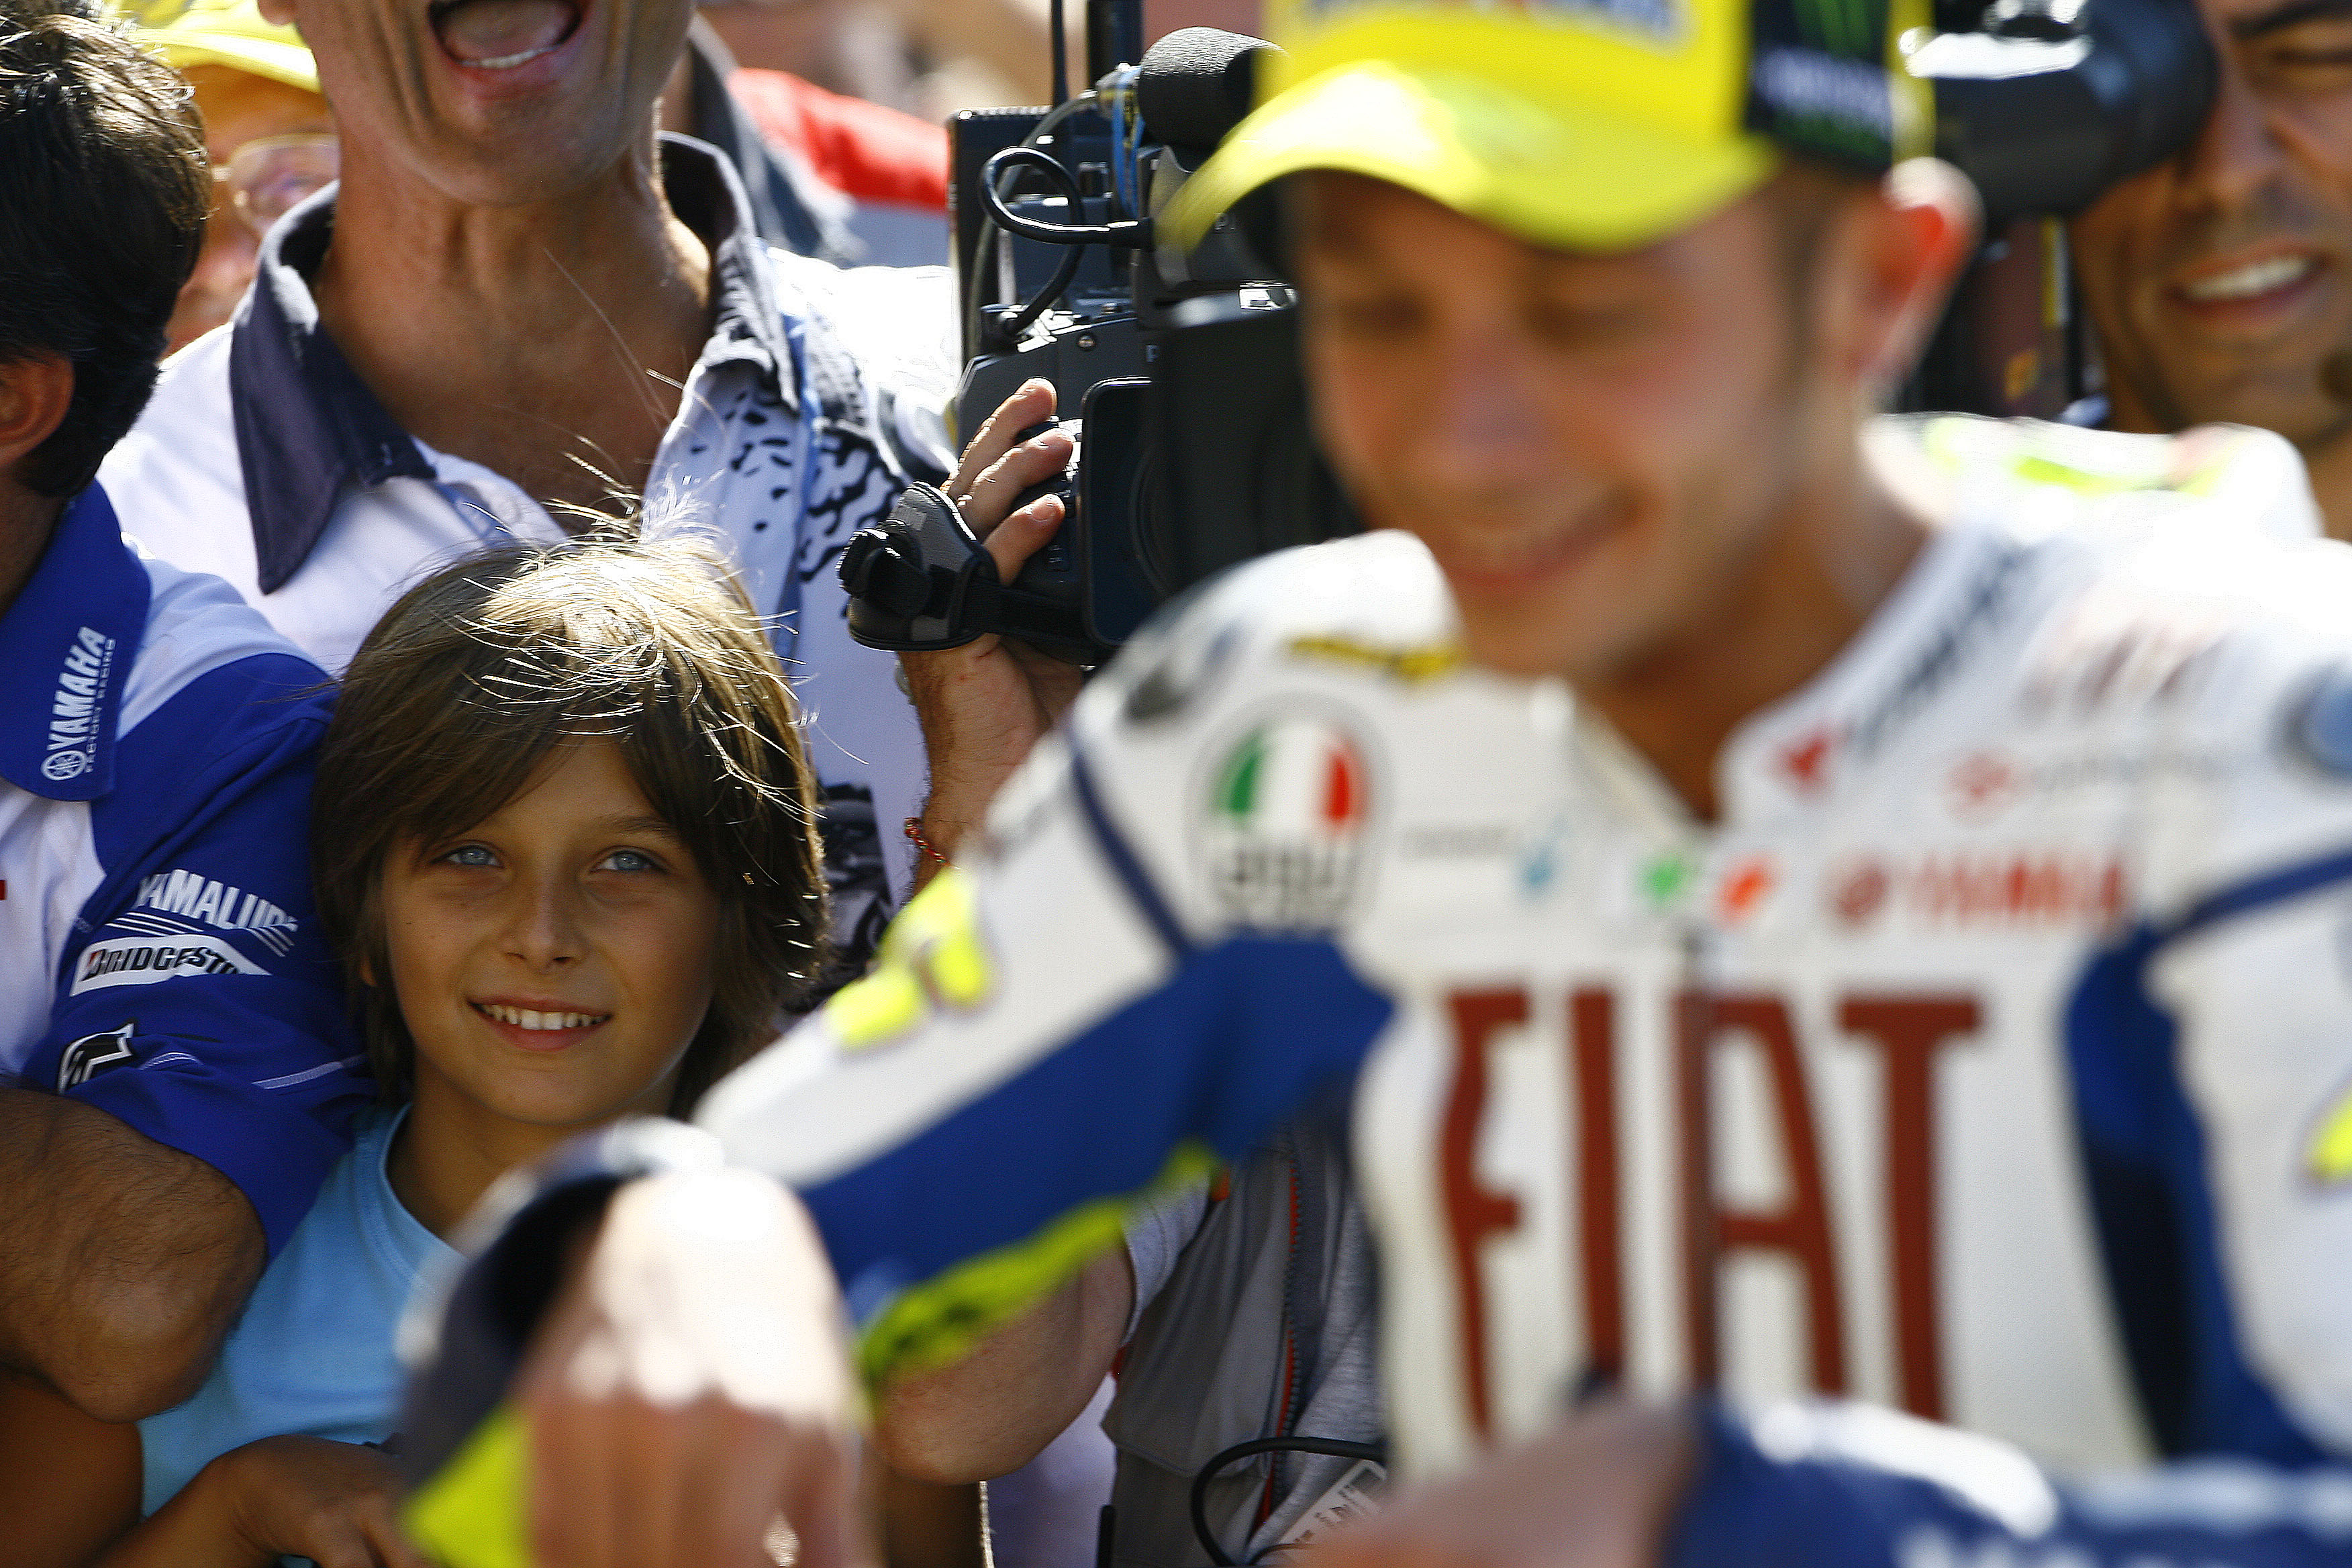 Rossi's half-brother to wildcard at Misano